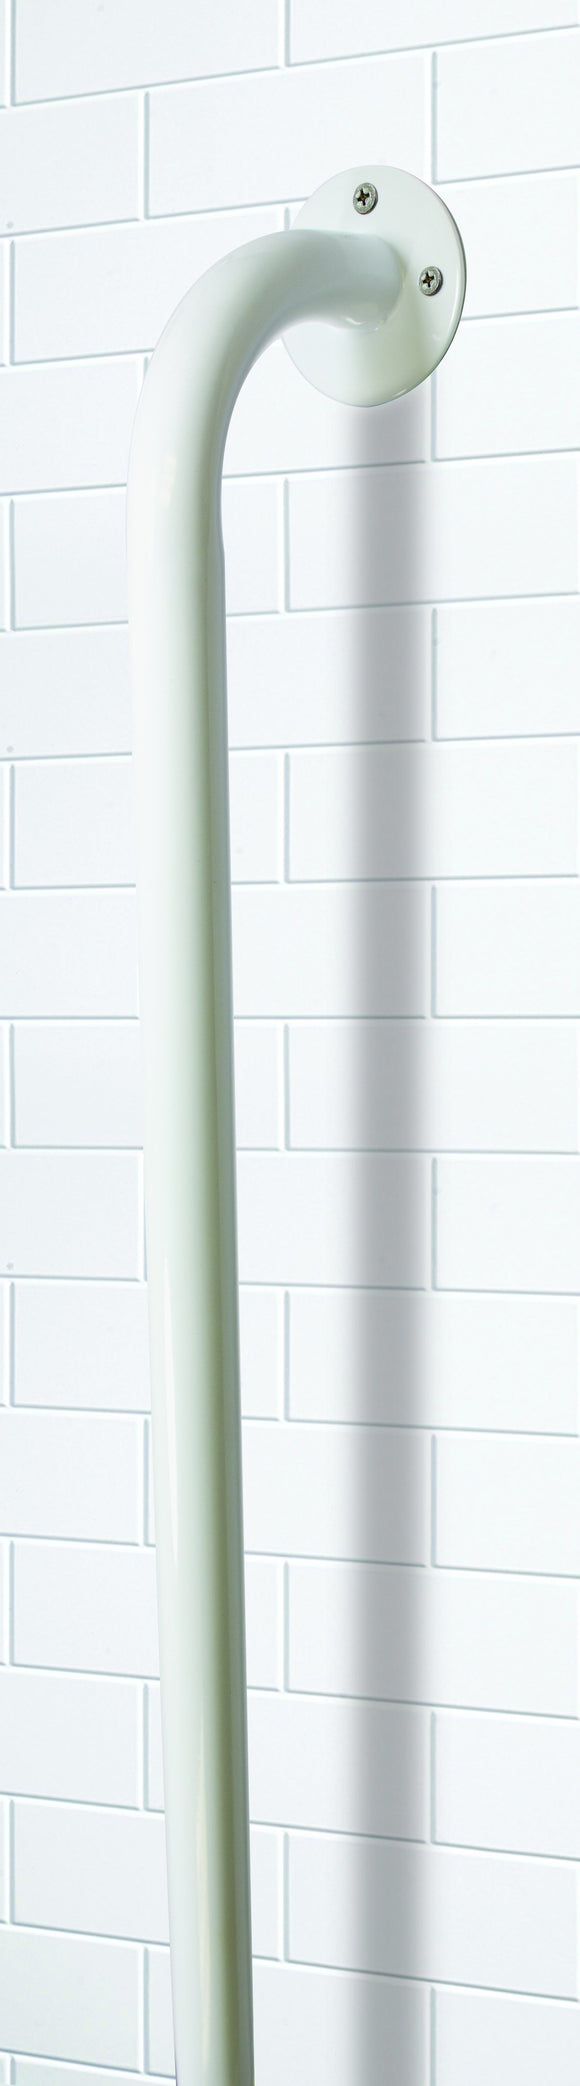 B3218 Grab Bar 18in White Enamel